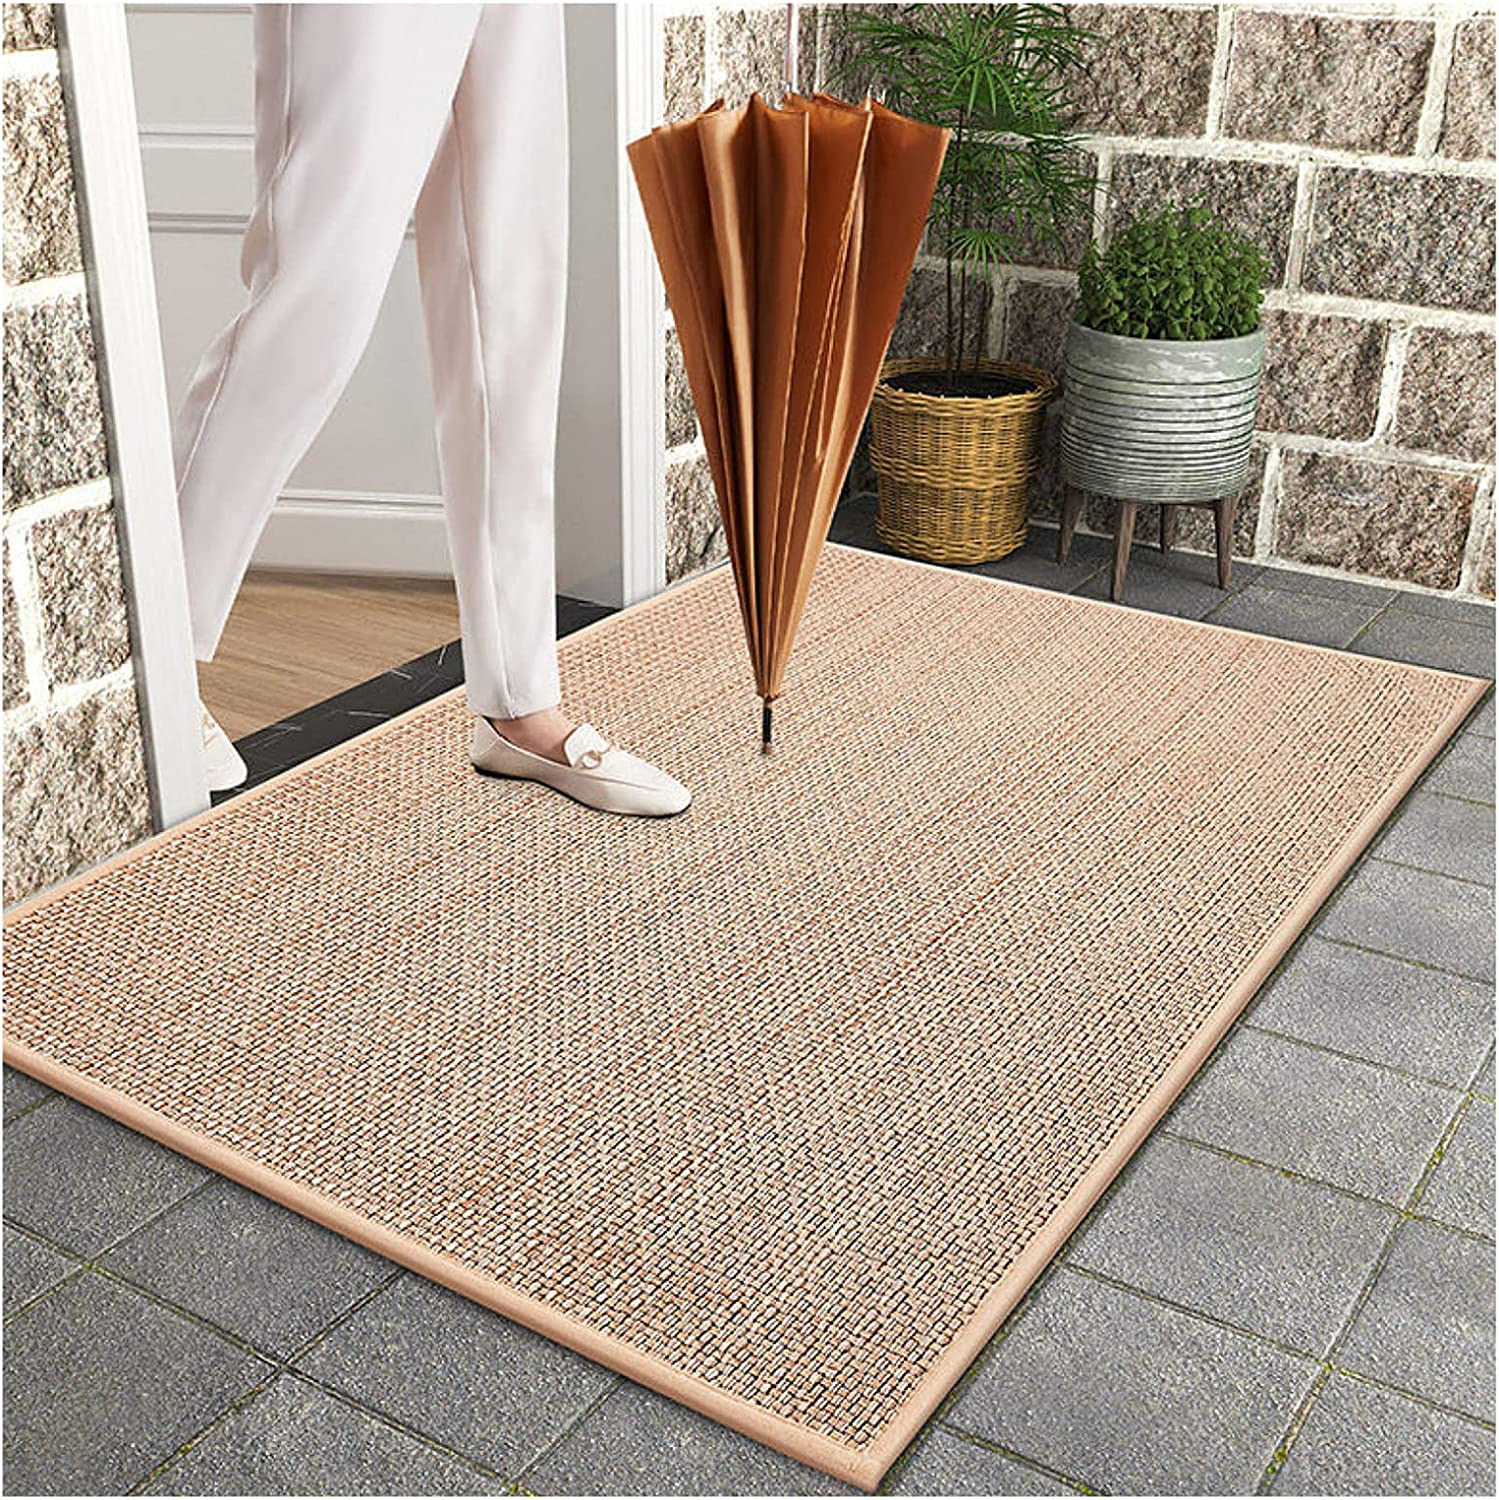 Hand-Woven Entry Natural Rubber Opening large release sale Door Backing Heavy Duty Mat Sales results No. 1 Outd